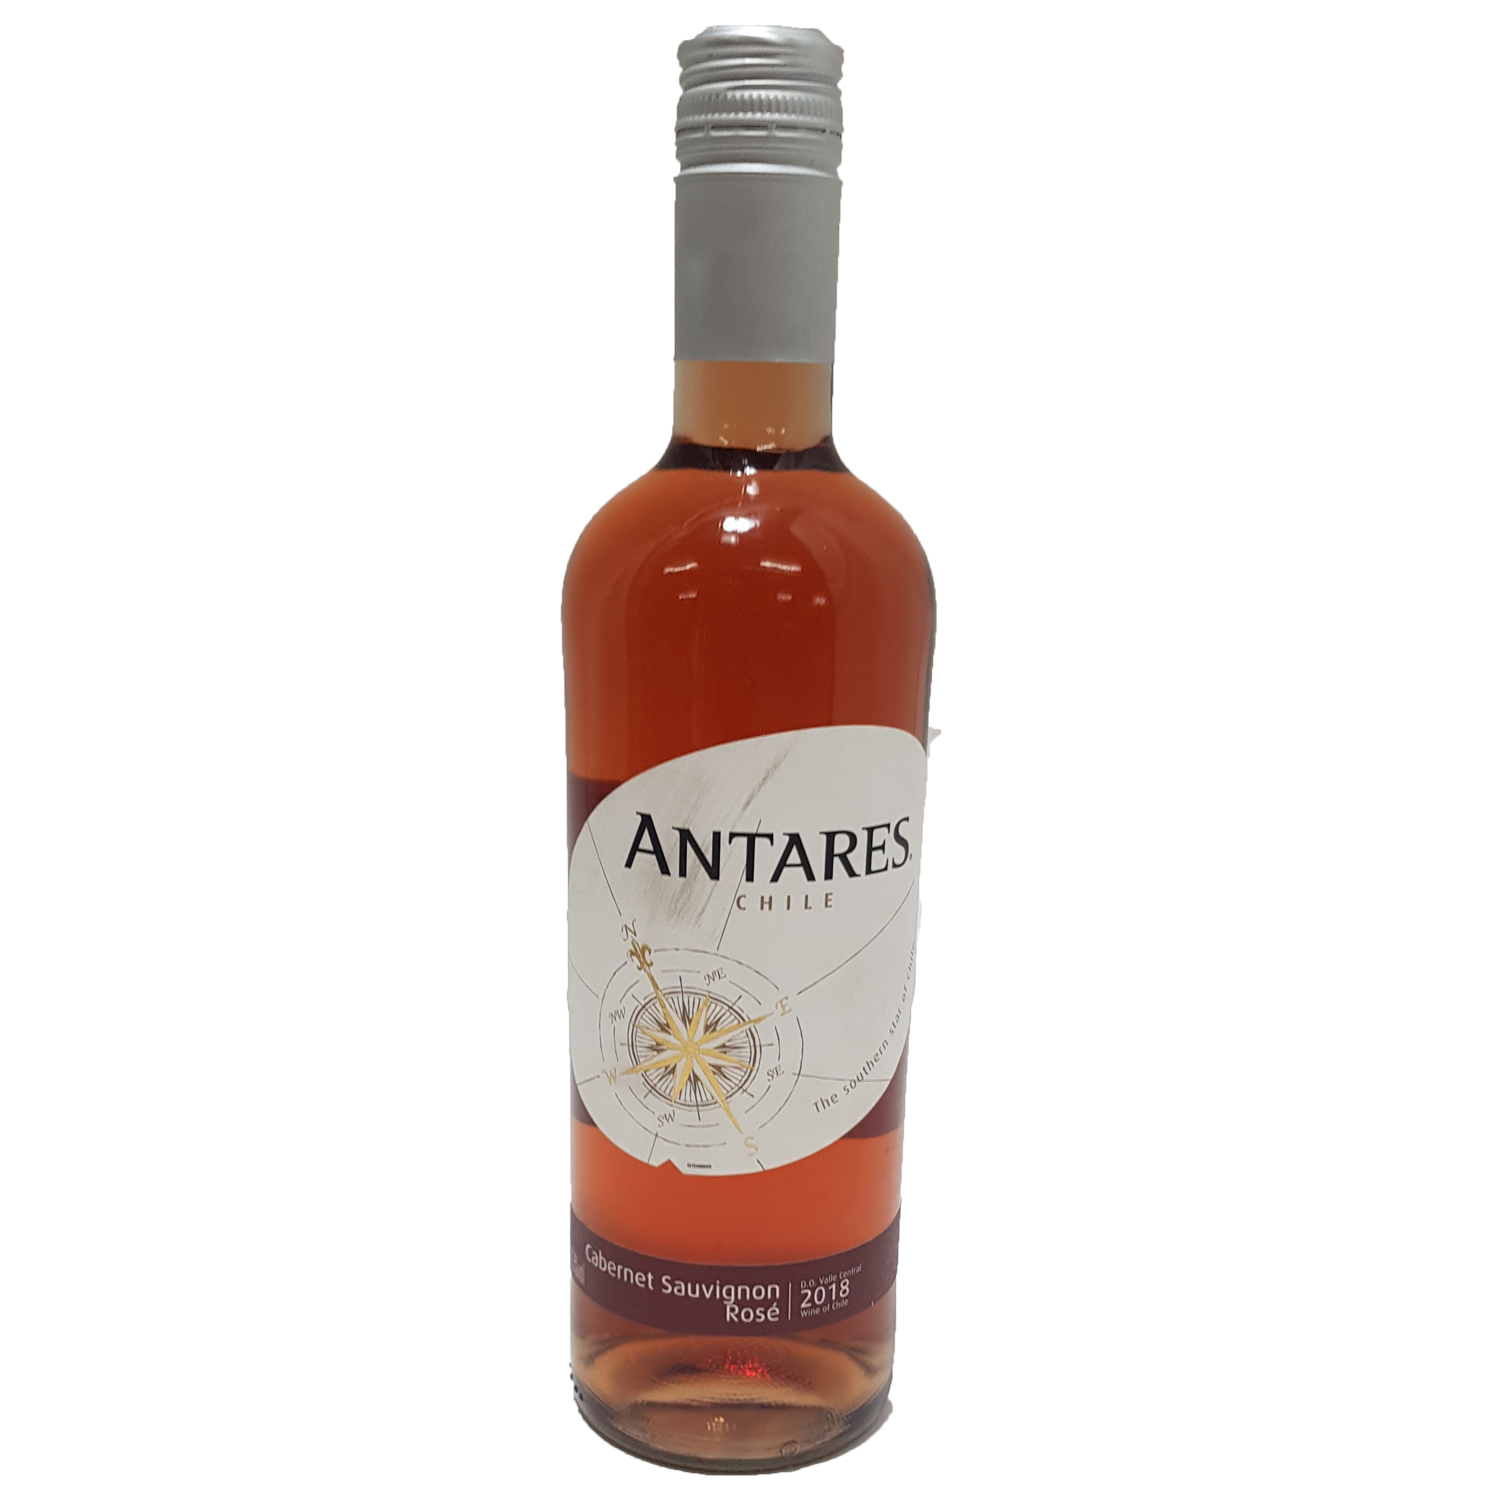 Antares Chilean Wine - Cabernet Sauvignon Rose	750ml